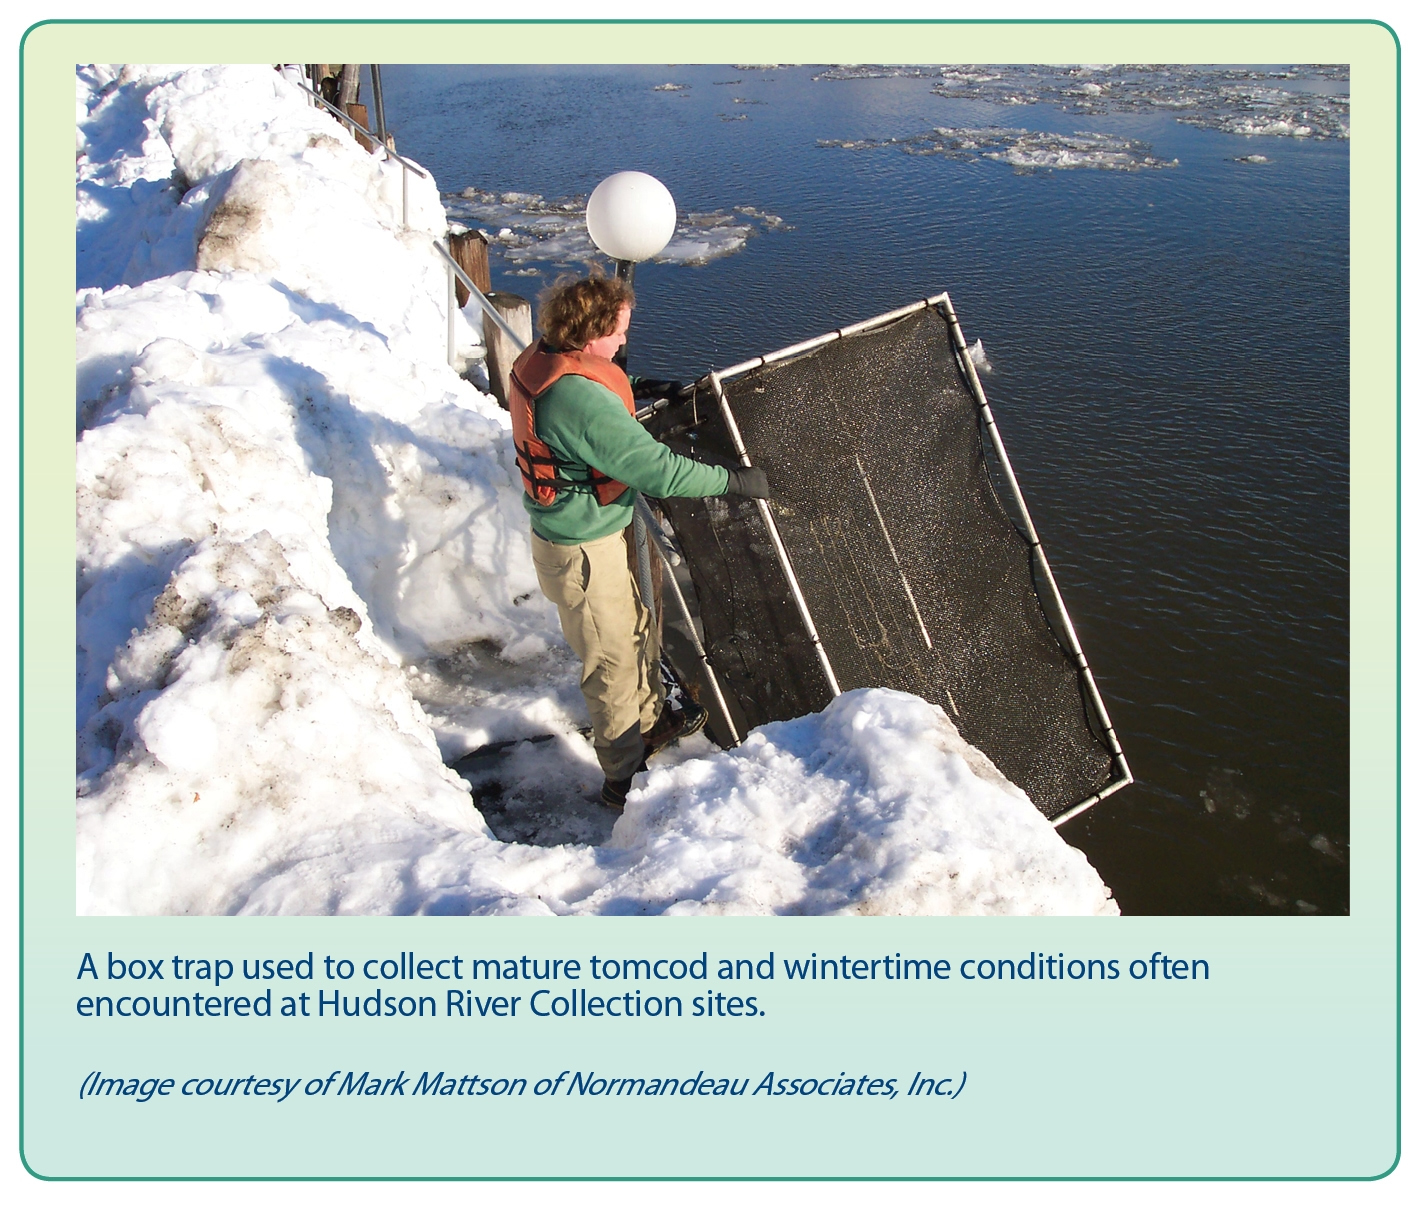 A box trap used to collect mature tomcod and wintertime conditions often encountered at Hudson River Collection sites.